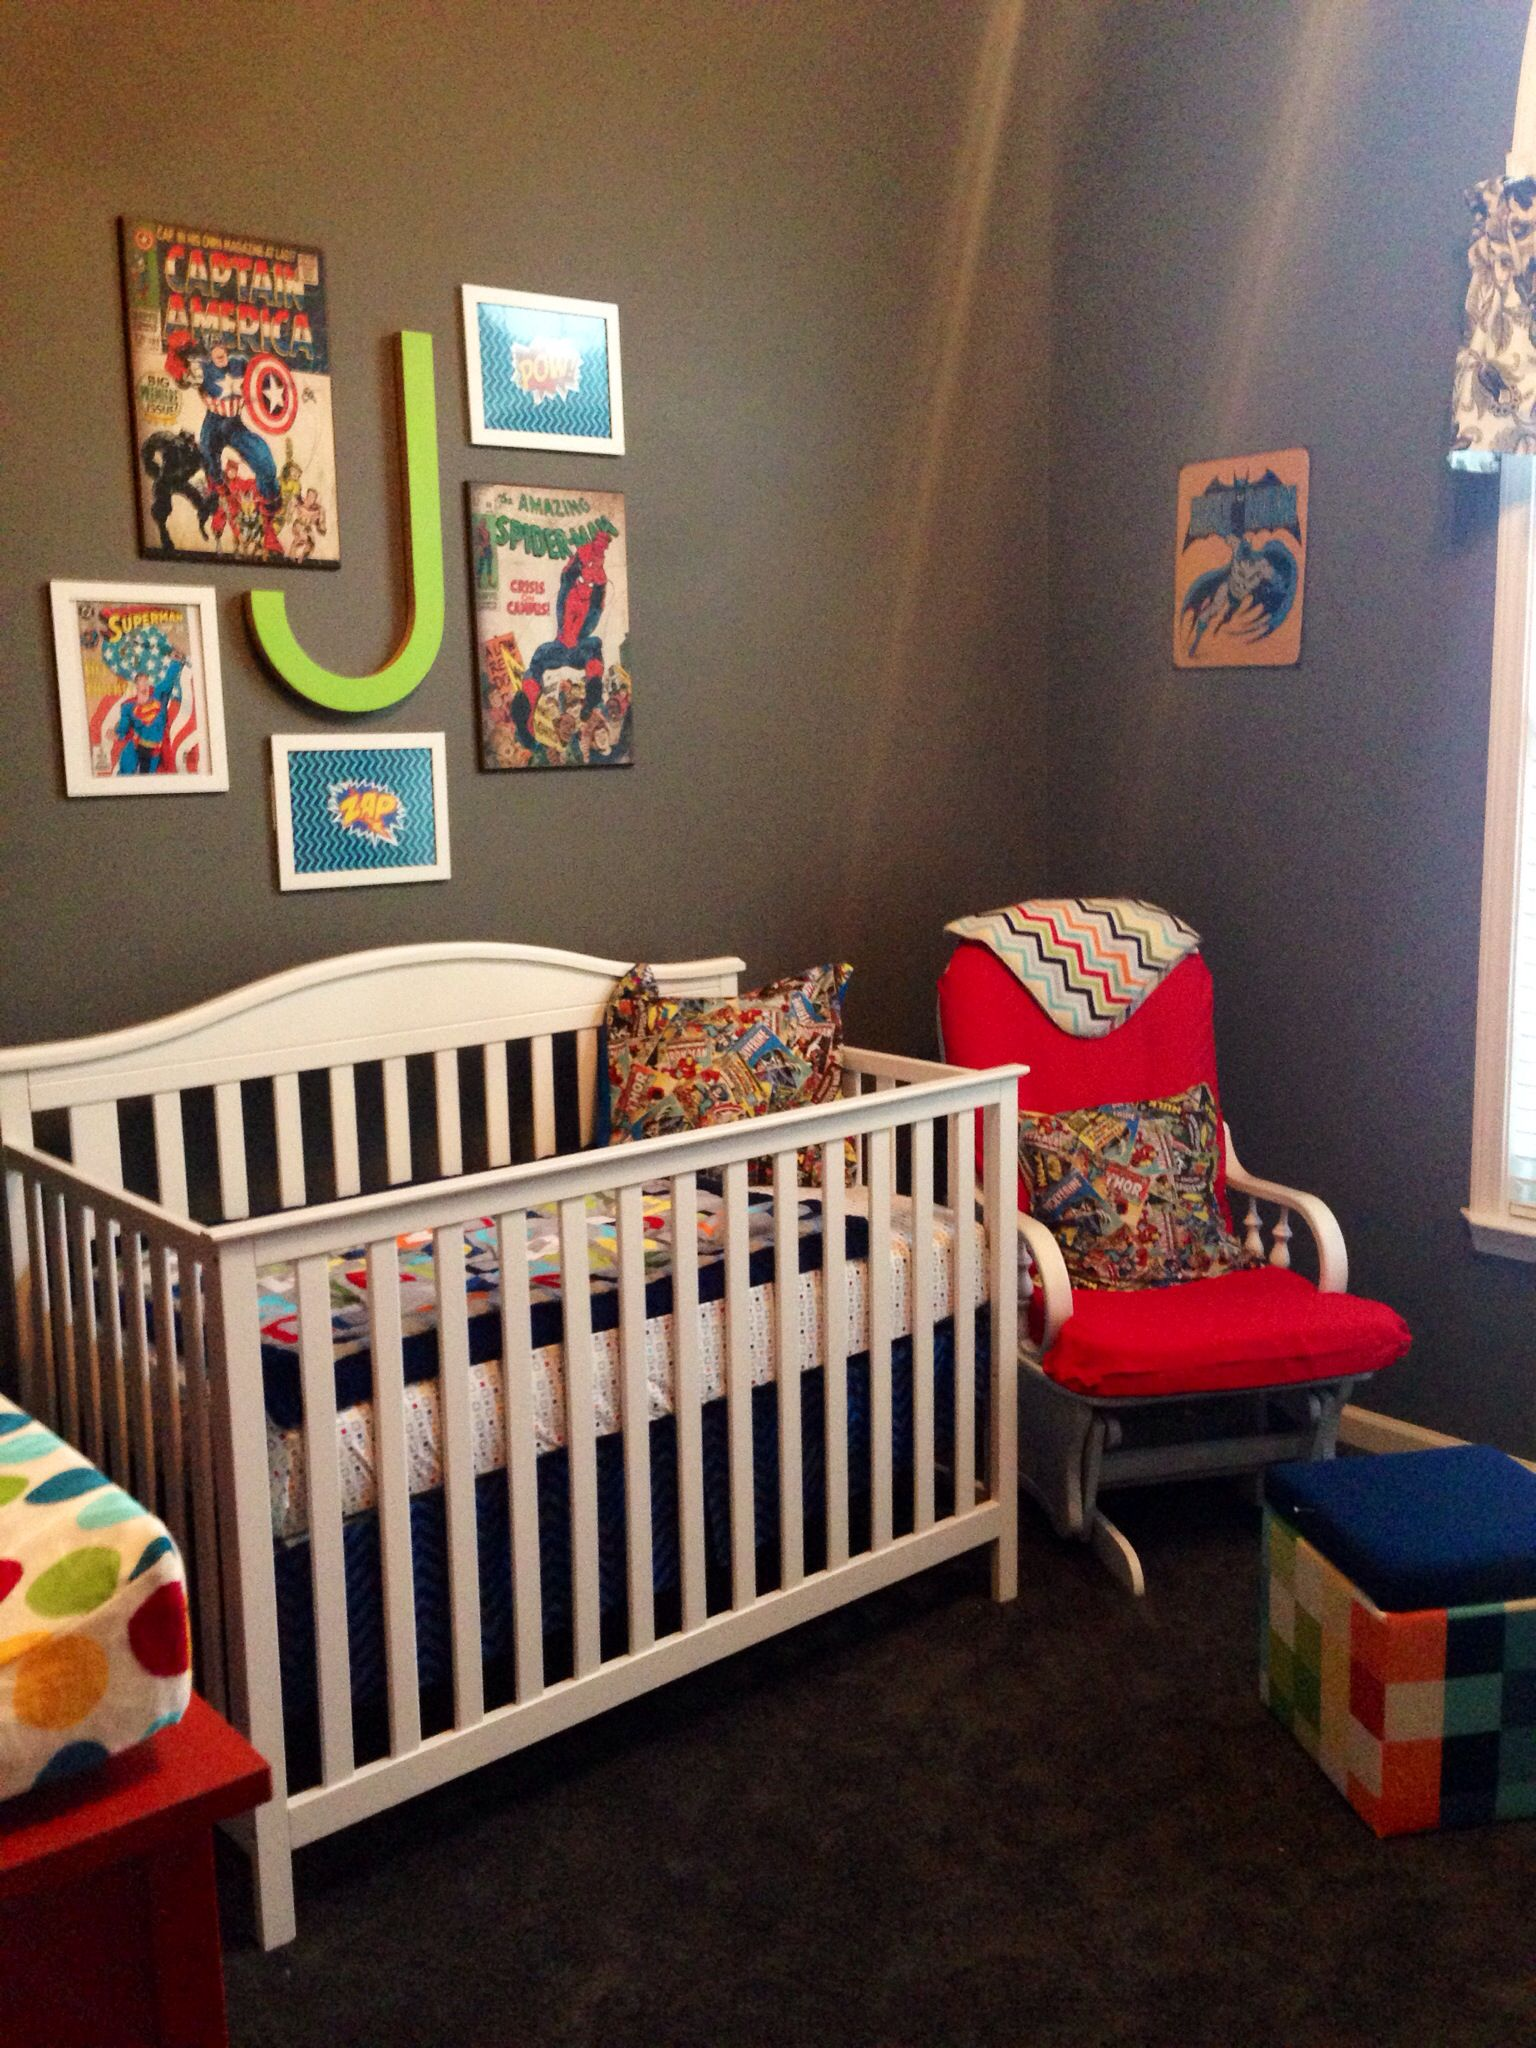 Vintage superhero bedding - Superhero Nursery Repainted And Recovered Glider Ottoman Bedding And Crib From Target